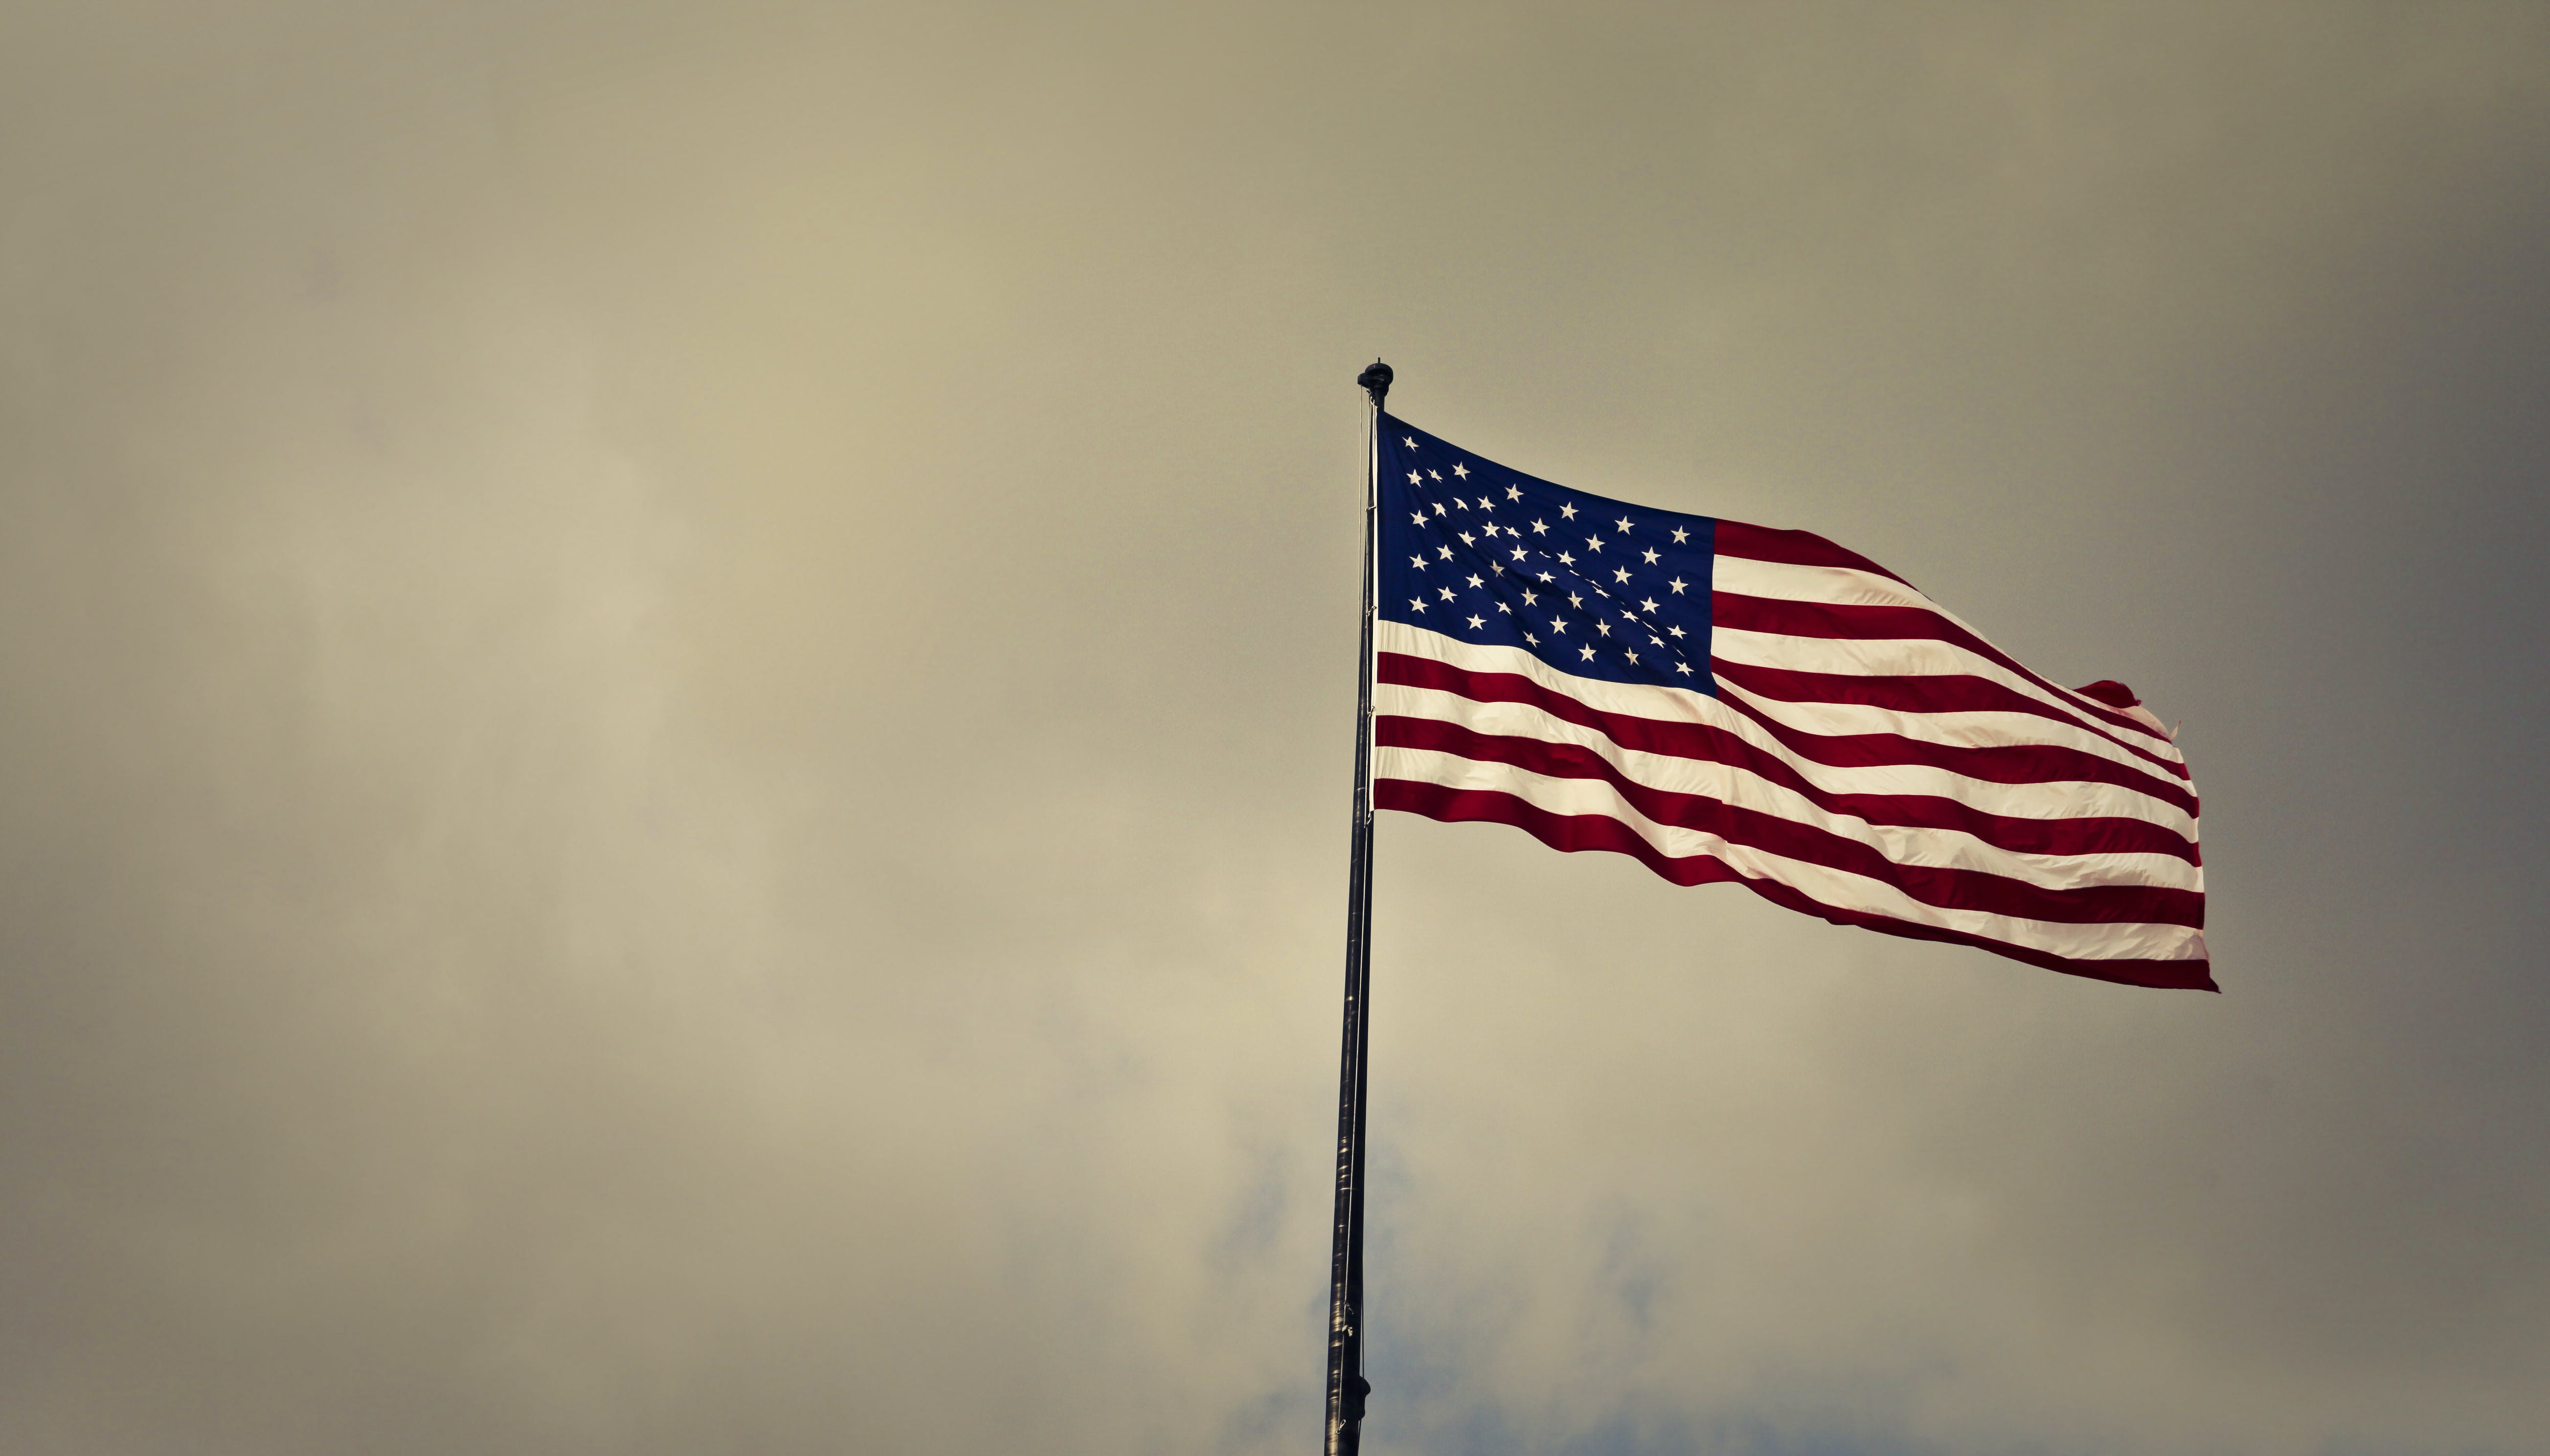 Photo of Cloudy Skies over American Flag